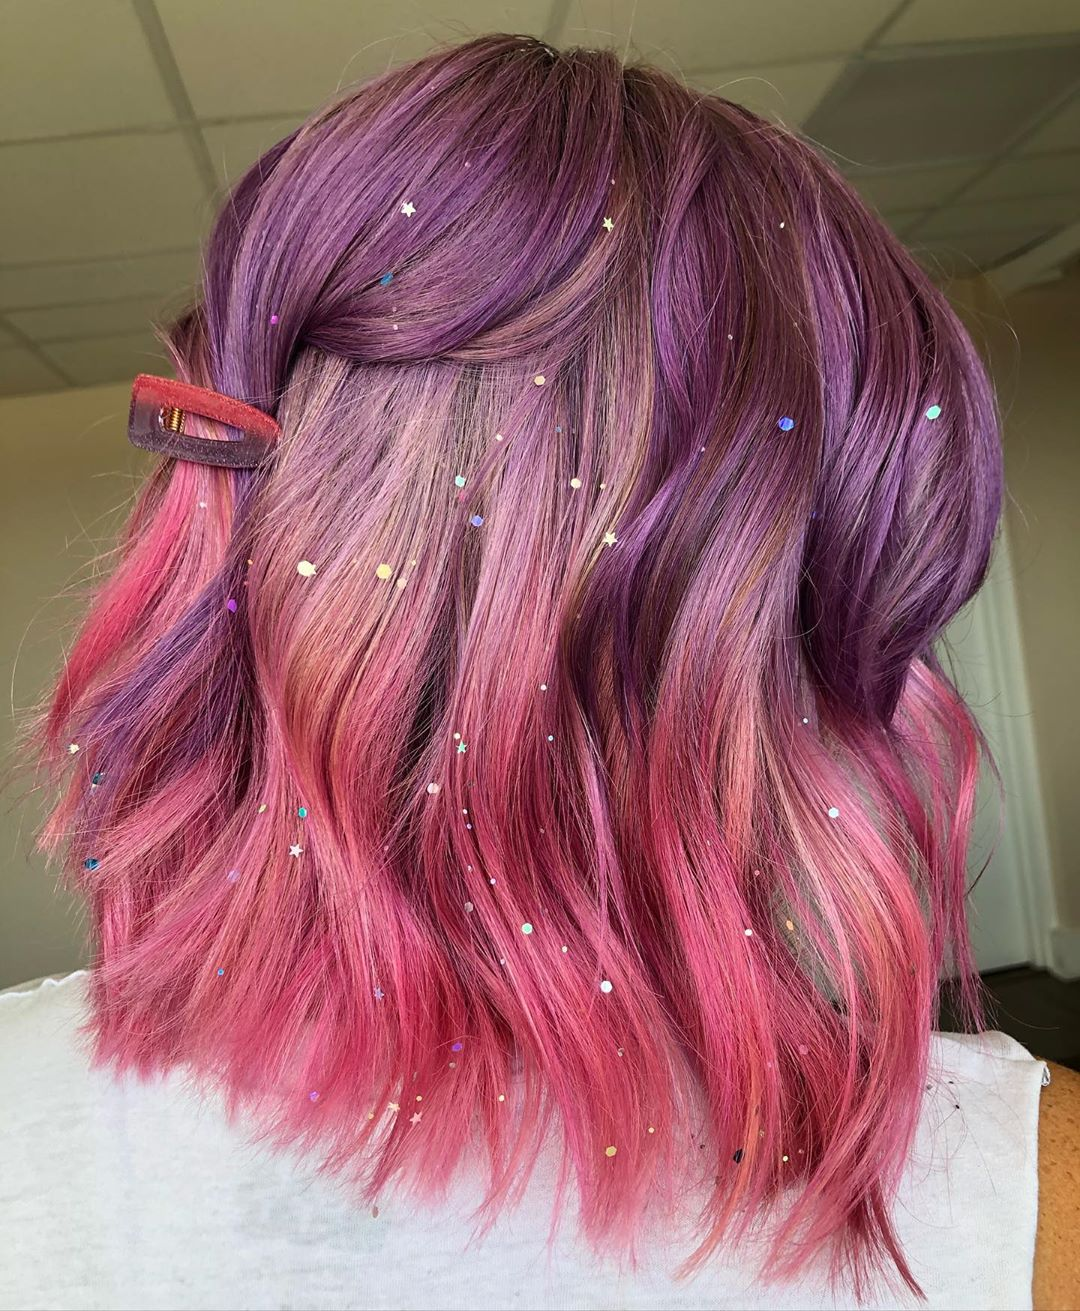 Inspiring Lob Hair Style for Women - Lob Haircut and Hairstyle Ideas of 2021